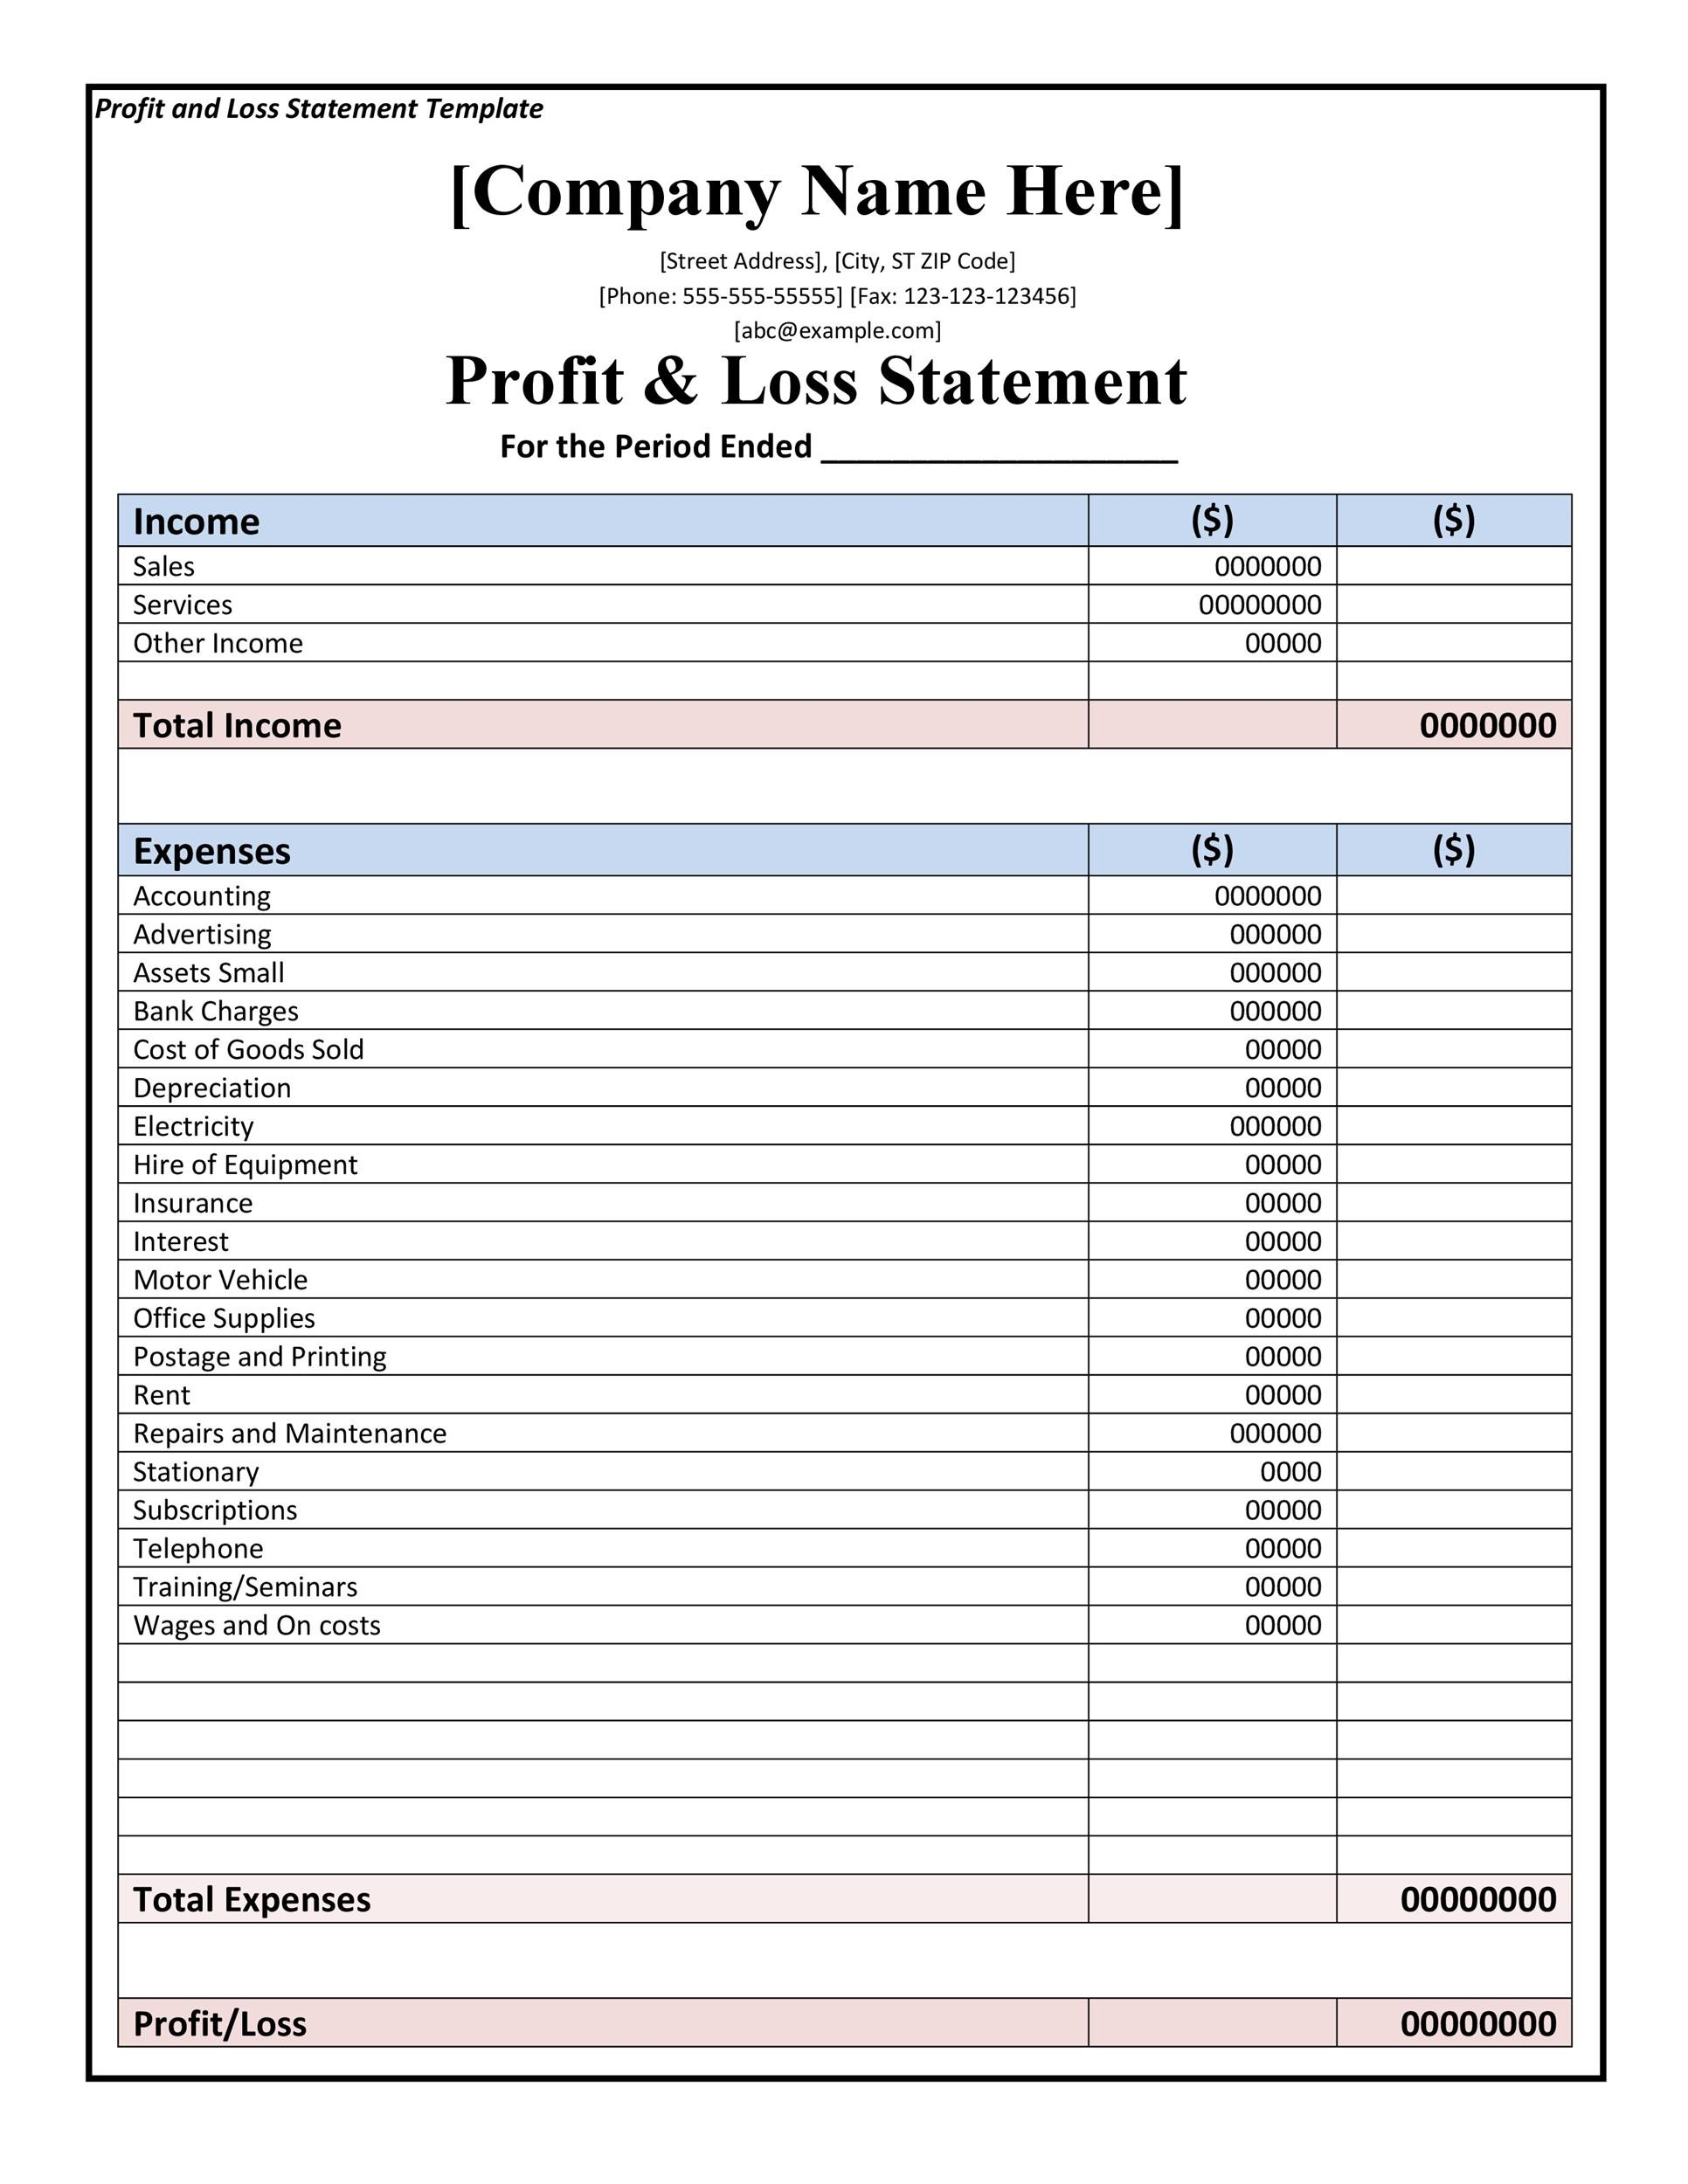 Free Profit and Loss Statement Template 37